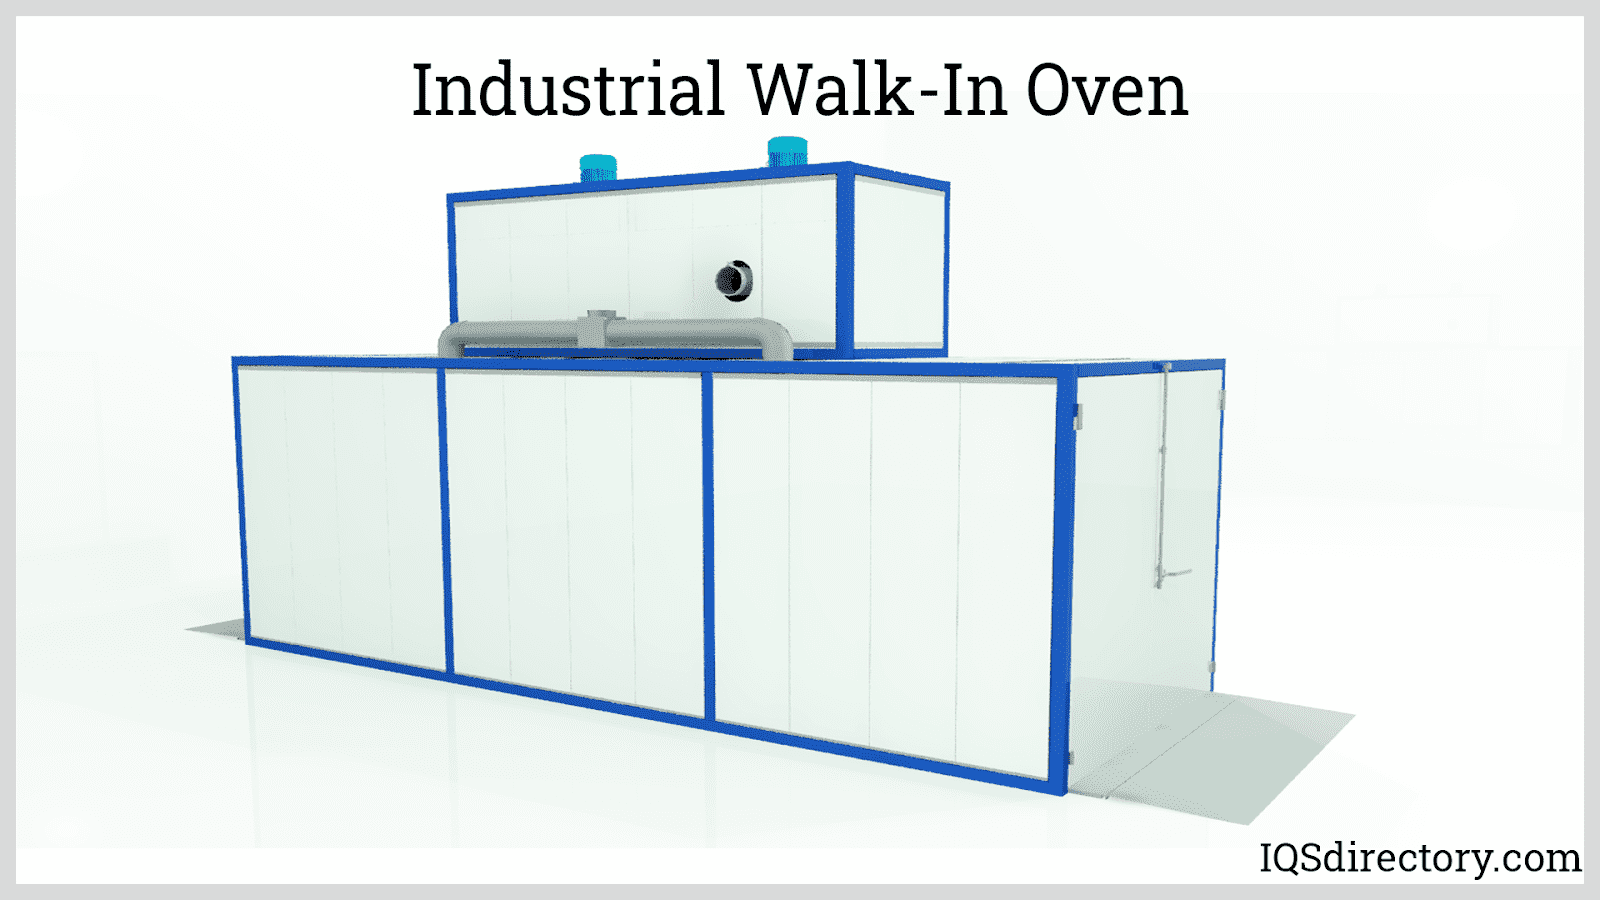 Industrial Walk-In Oven